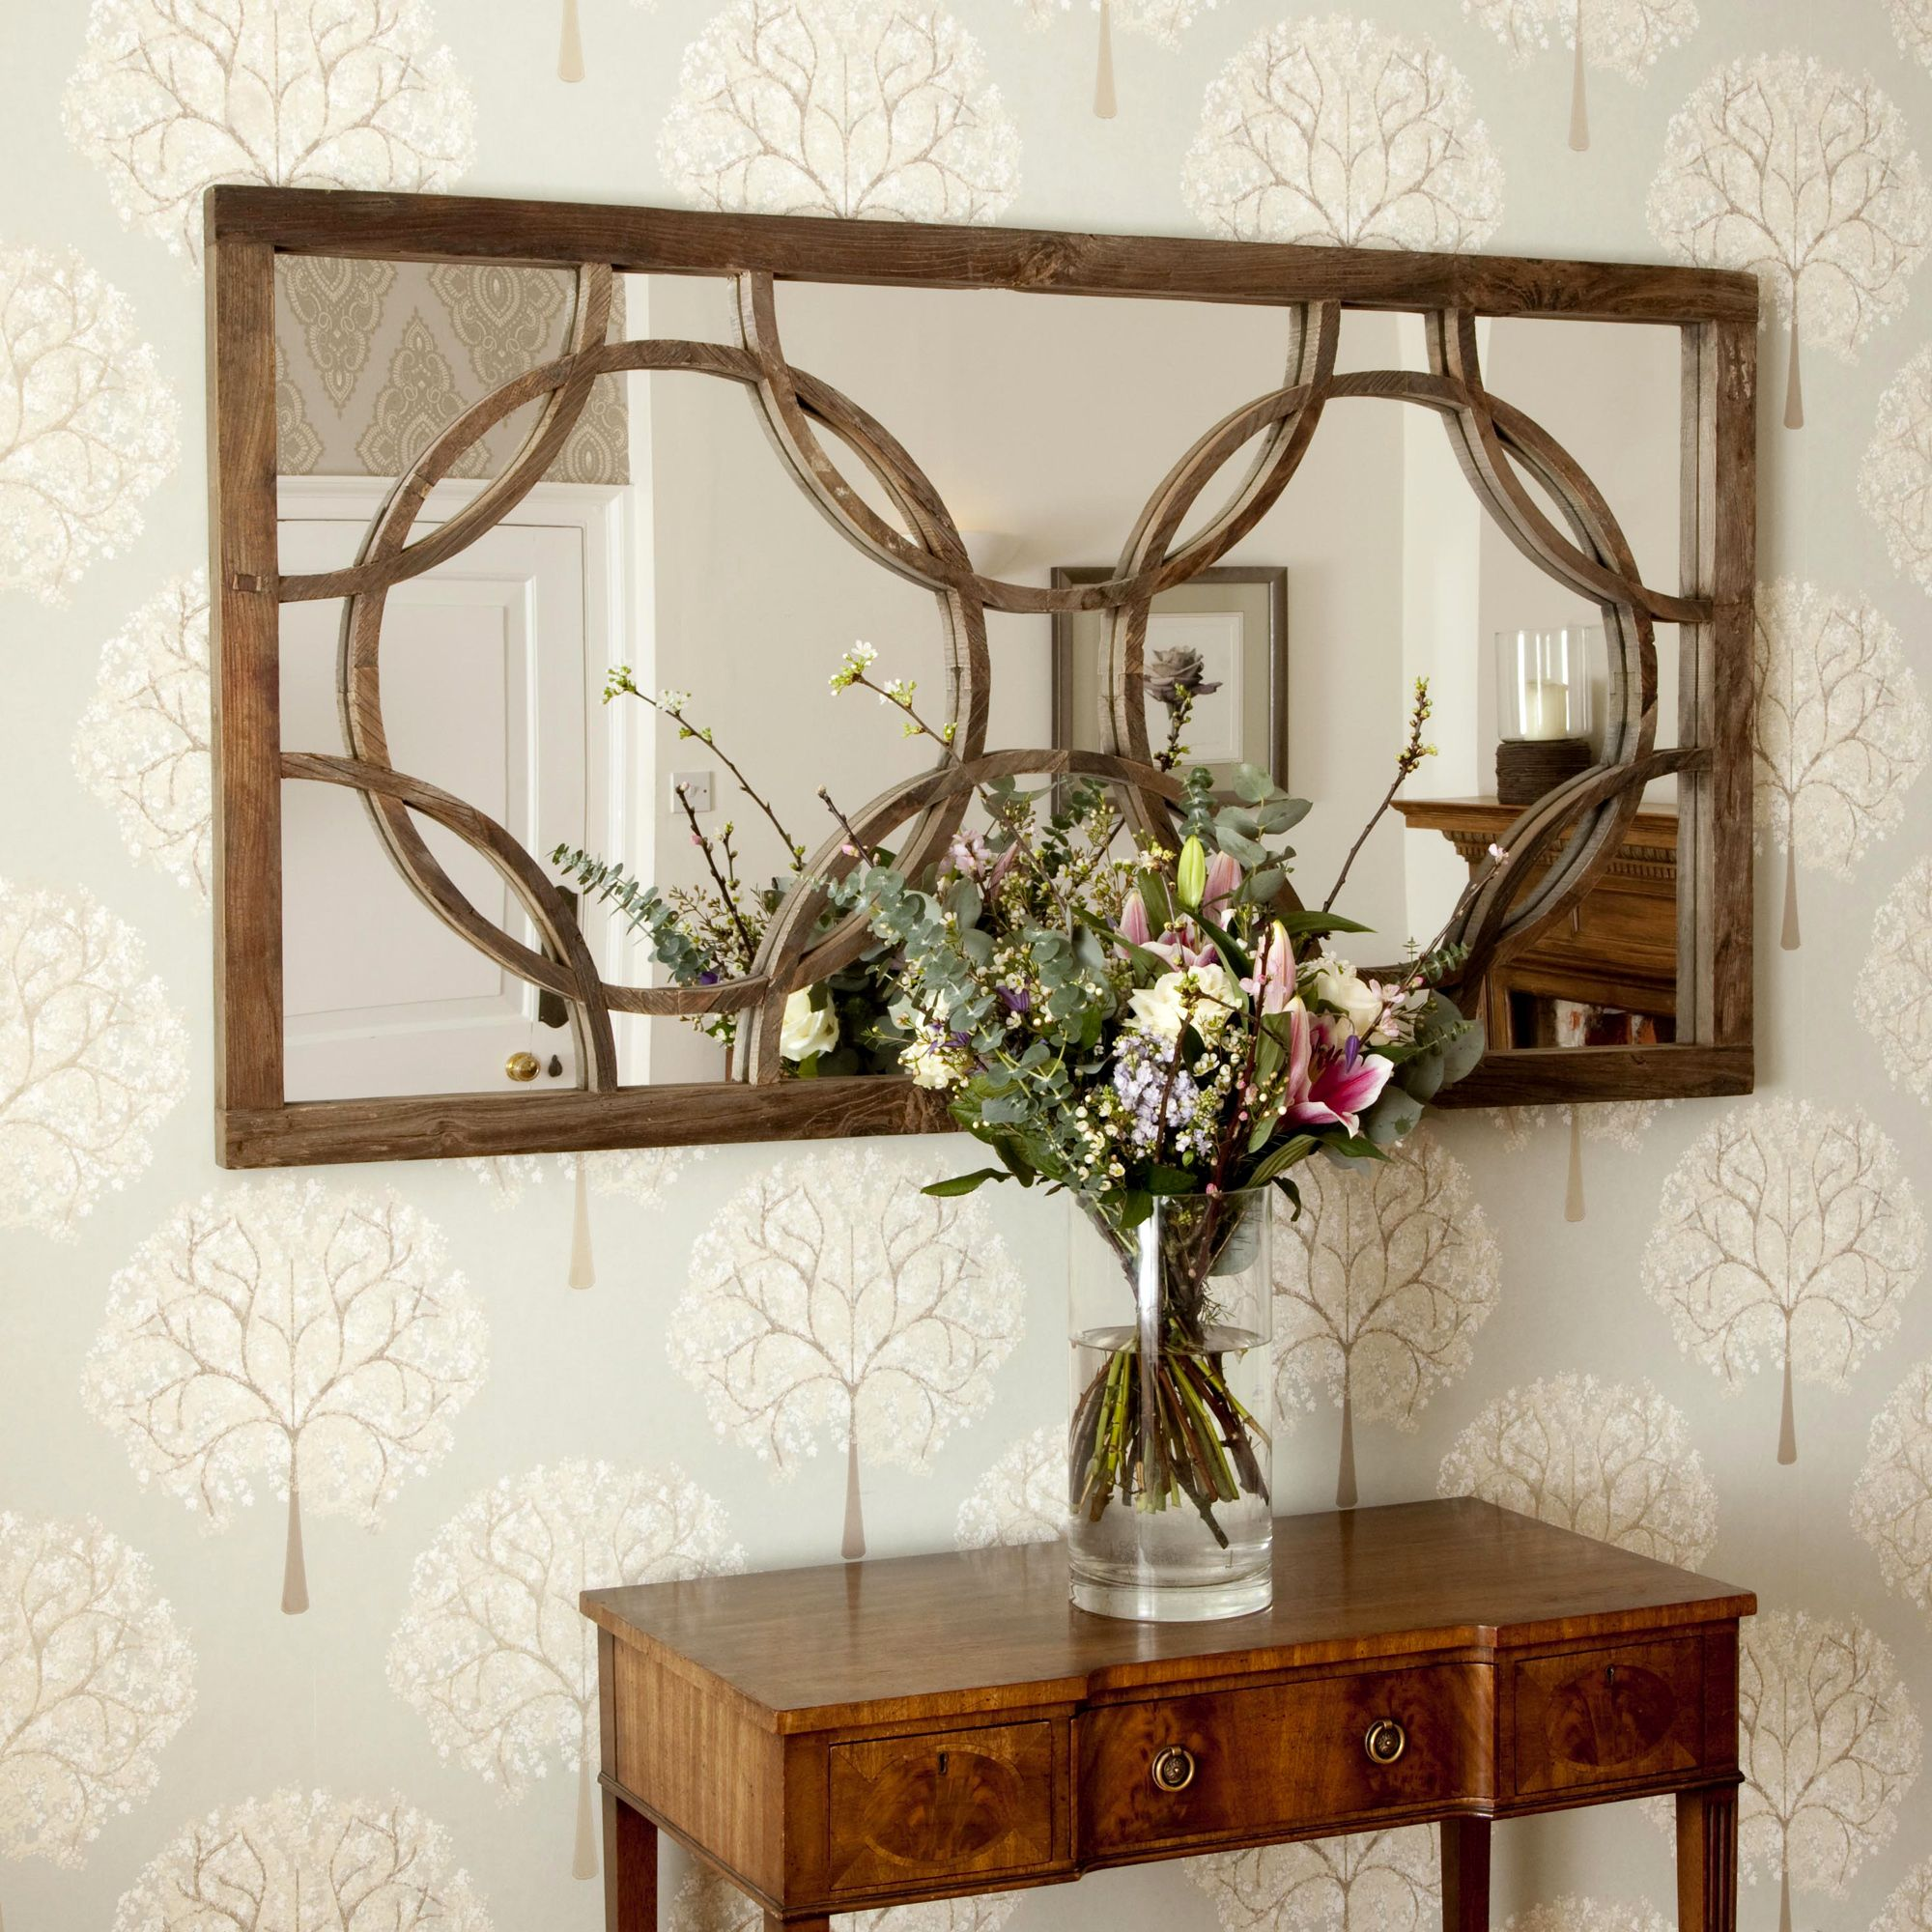 Decorative mirrors for dining room wooden medieval style mirror  pinterest  medieval frame mirrors